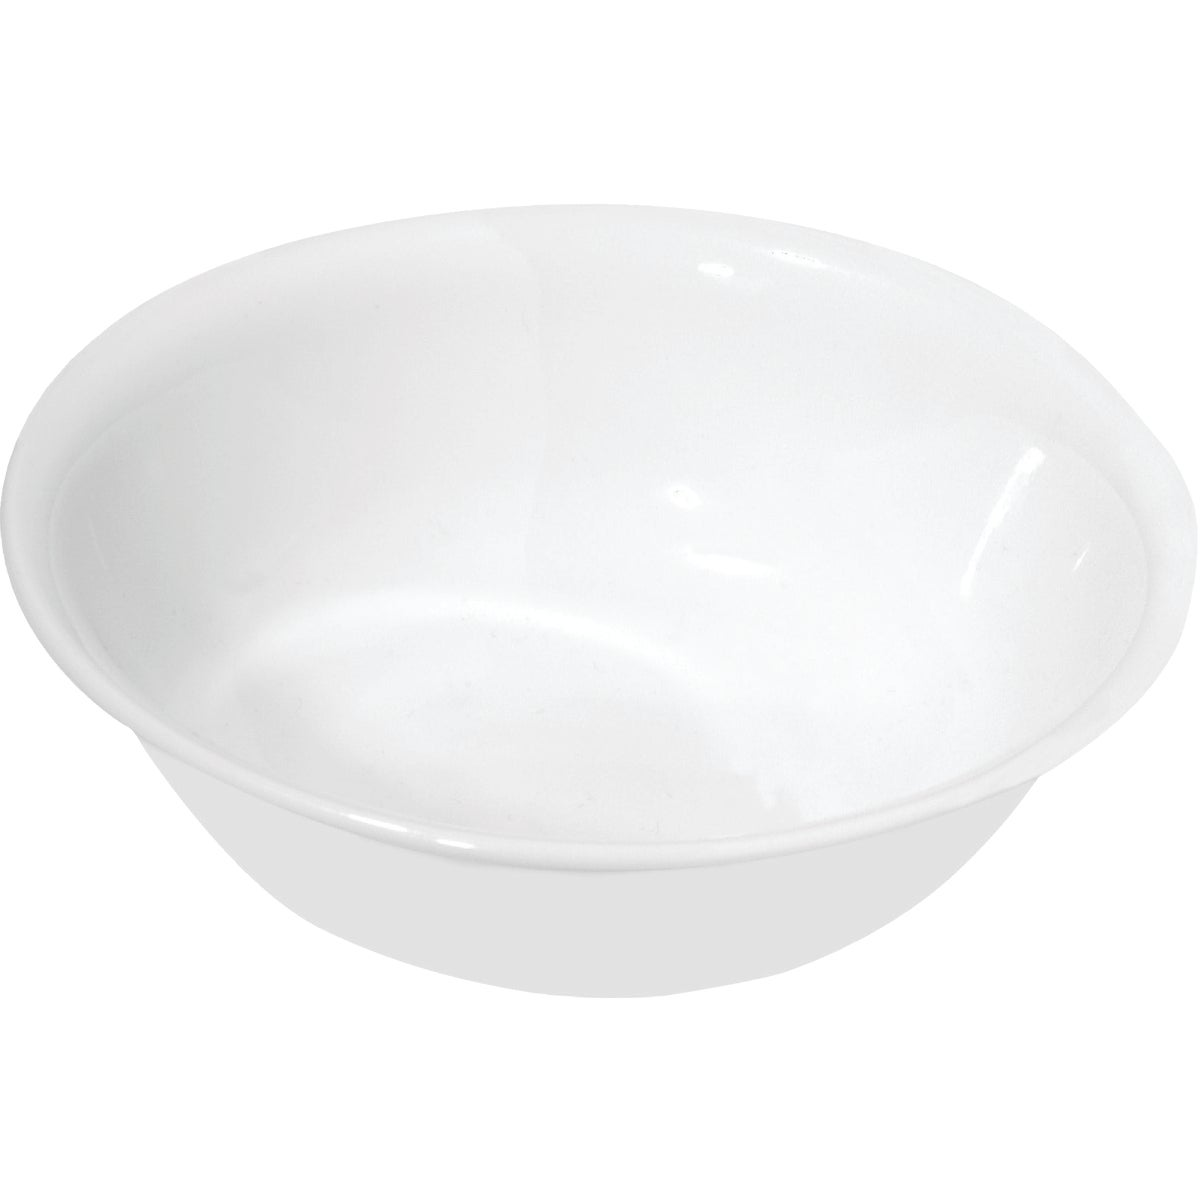 LARGE WHITE BOWL - 6003905 by World Kitchen